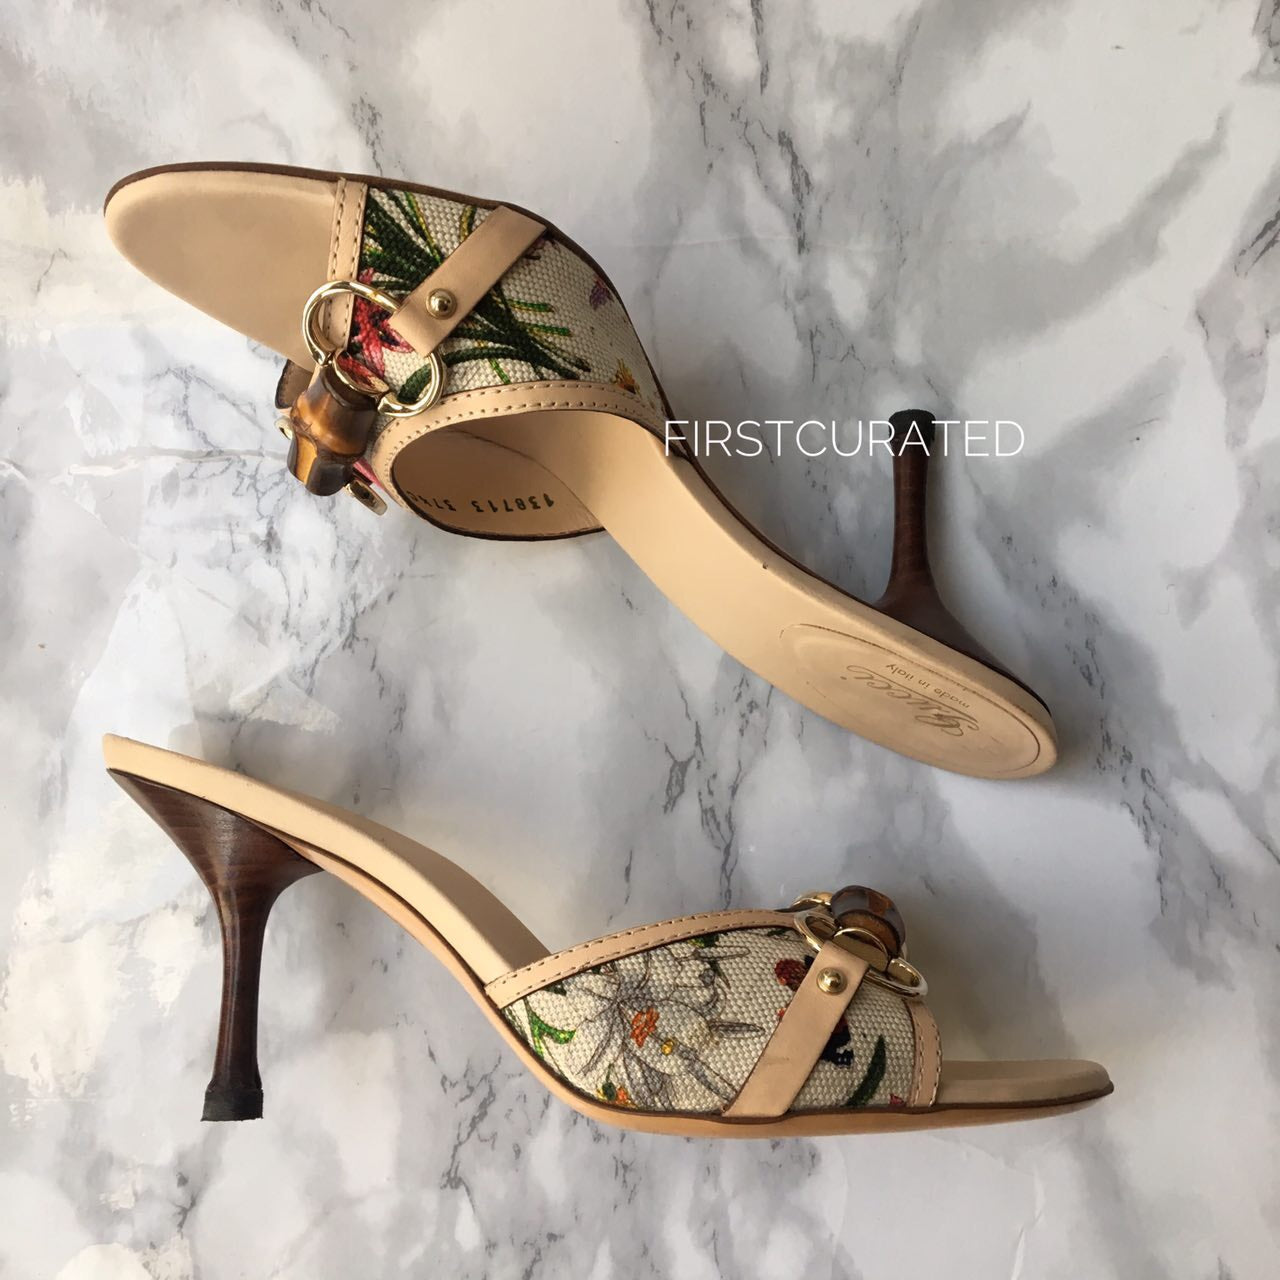 Gucci Limited Edition Floral Bamboo Slides, size 37.5